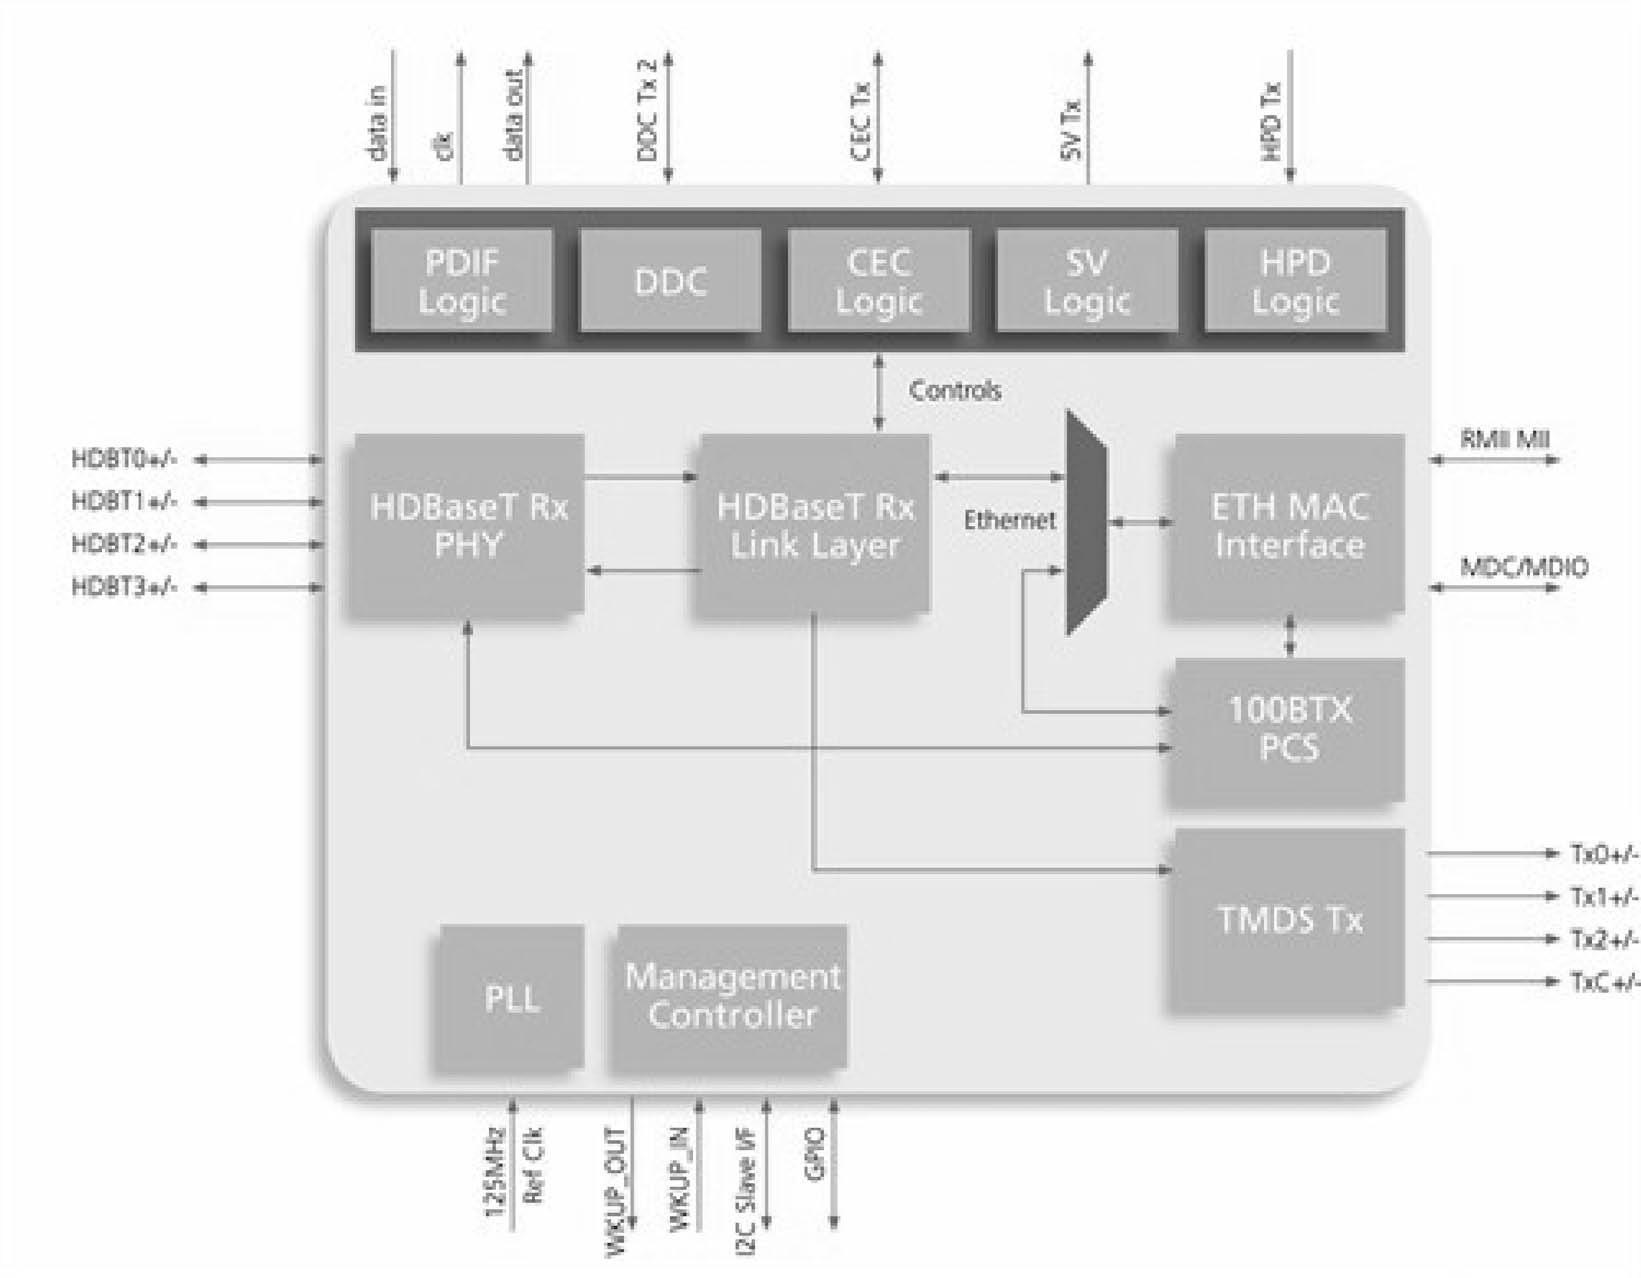 Valens Semiconductor Is A Leading Provider Of Products Block Diagram Hdtv Vs100tx Transmitter 2 Vs100rx Receiver For Hdtvs